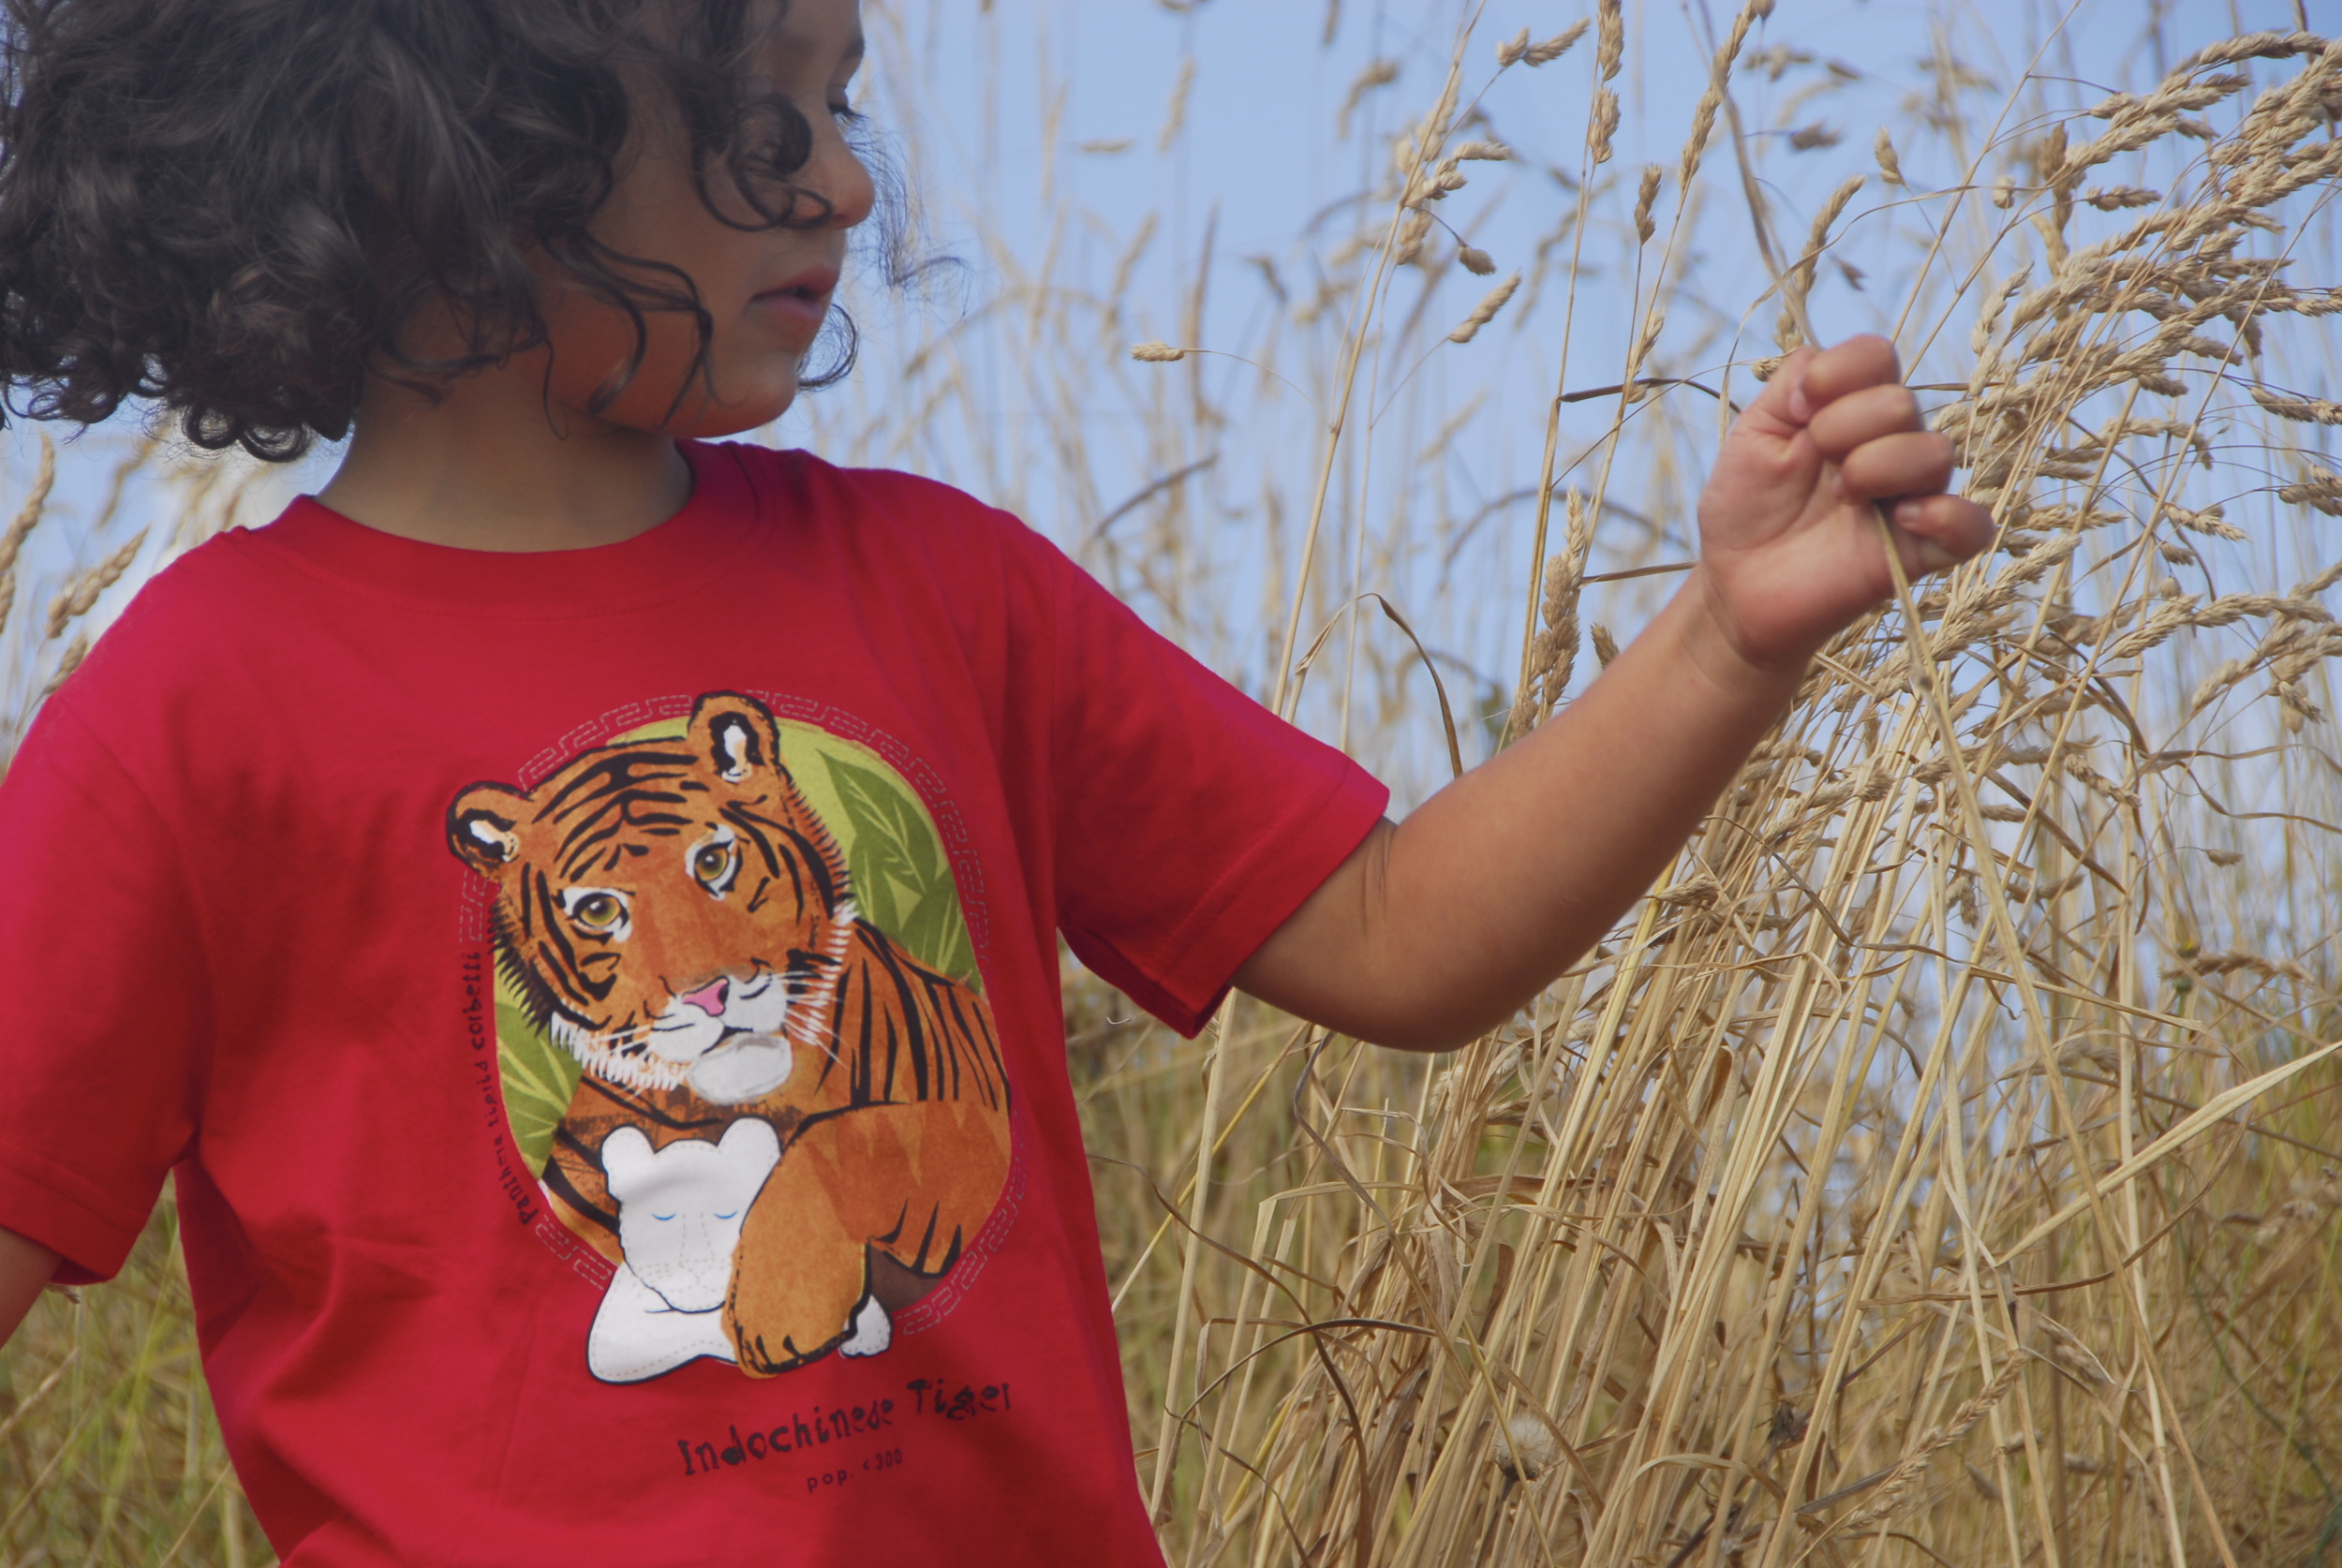 $1 for One .  Support the extraordinary work of Panthera by purchasing a SpeeZees Indochinese Tiger t-shirt in  Ladybug  or  Natural .  Made from  100% GOTS certified organic cotton .